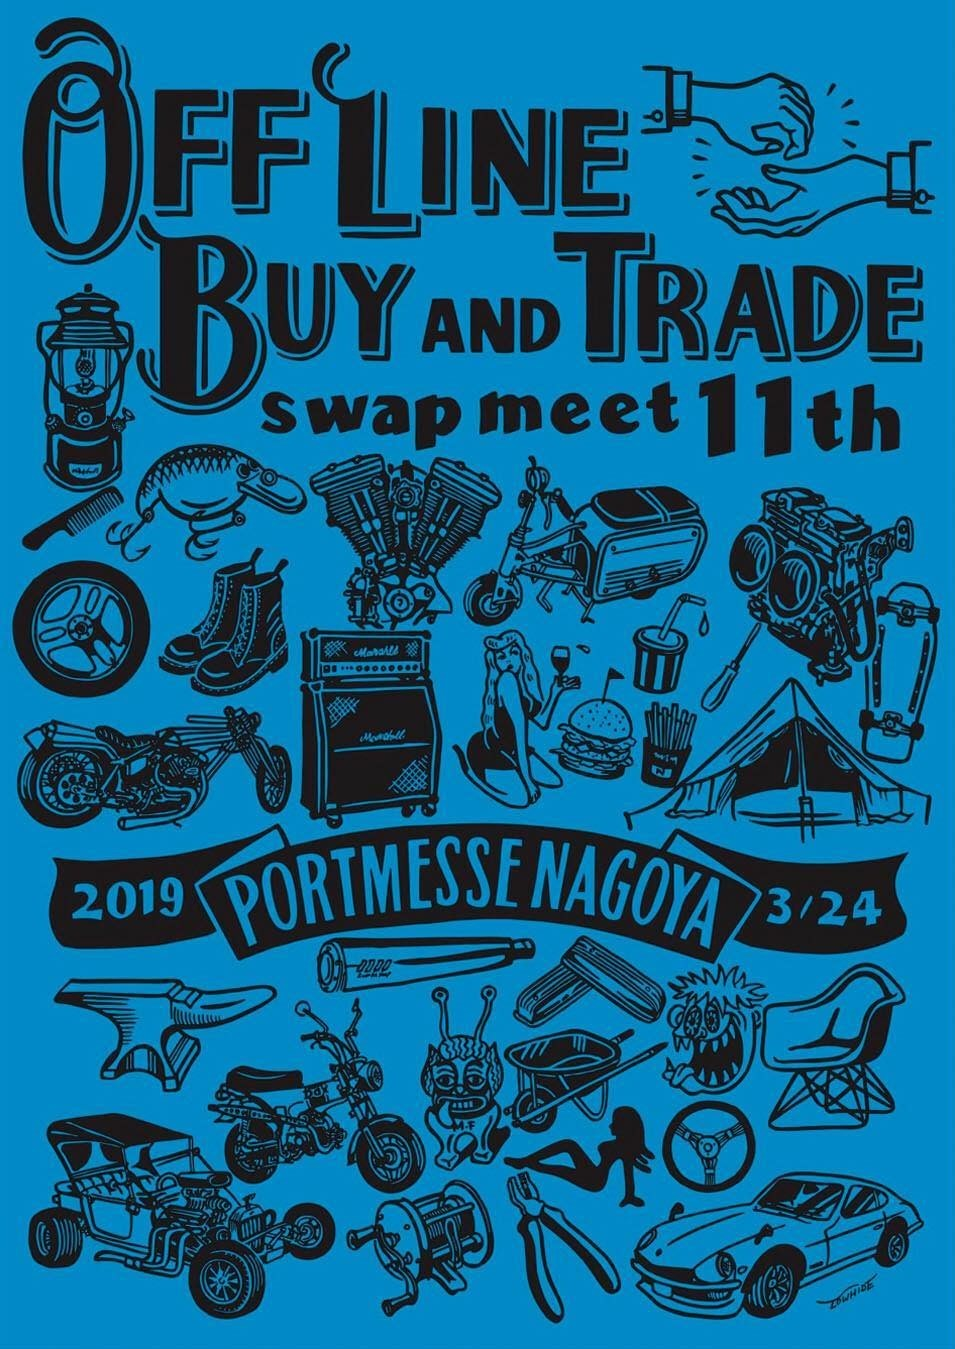 OFF LINE BUY AND TRADE 11th 出店のお知らせ _e0379485_18283499.jpg